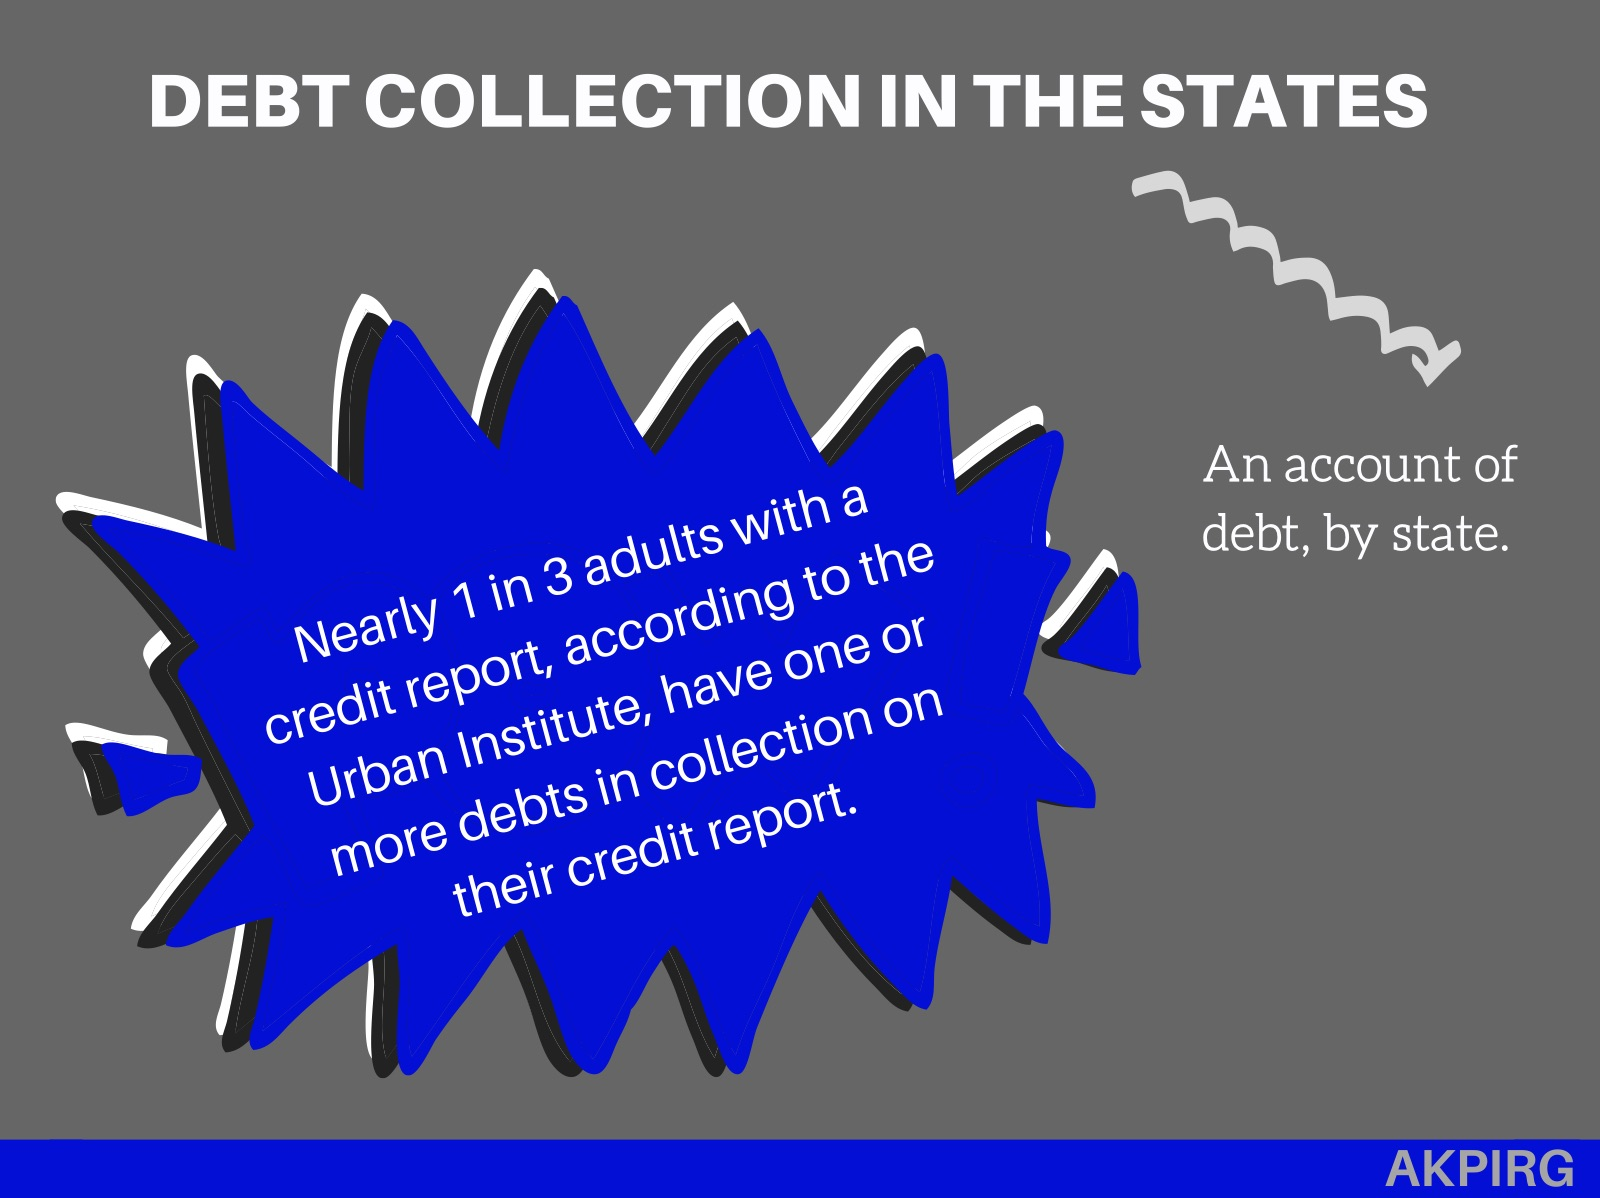 Debt Collection in the States.jpg